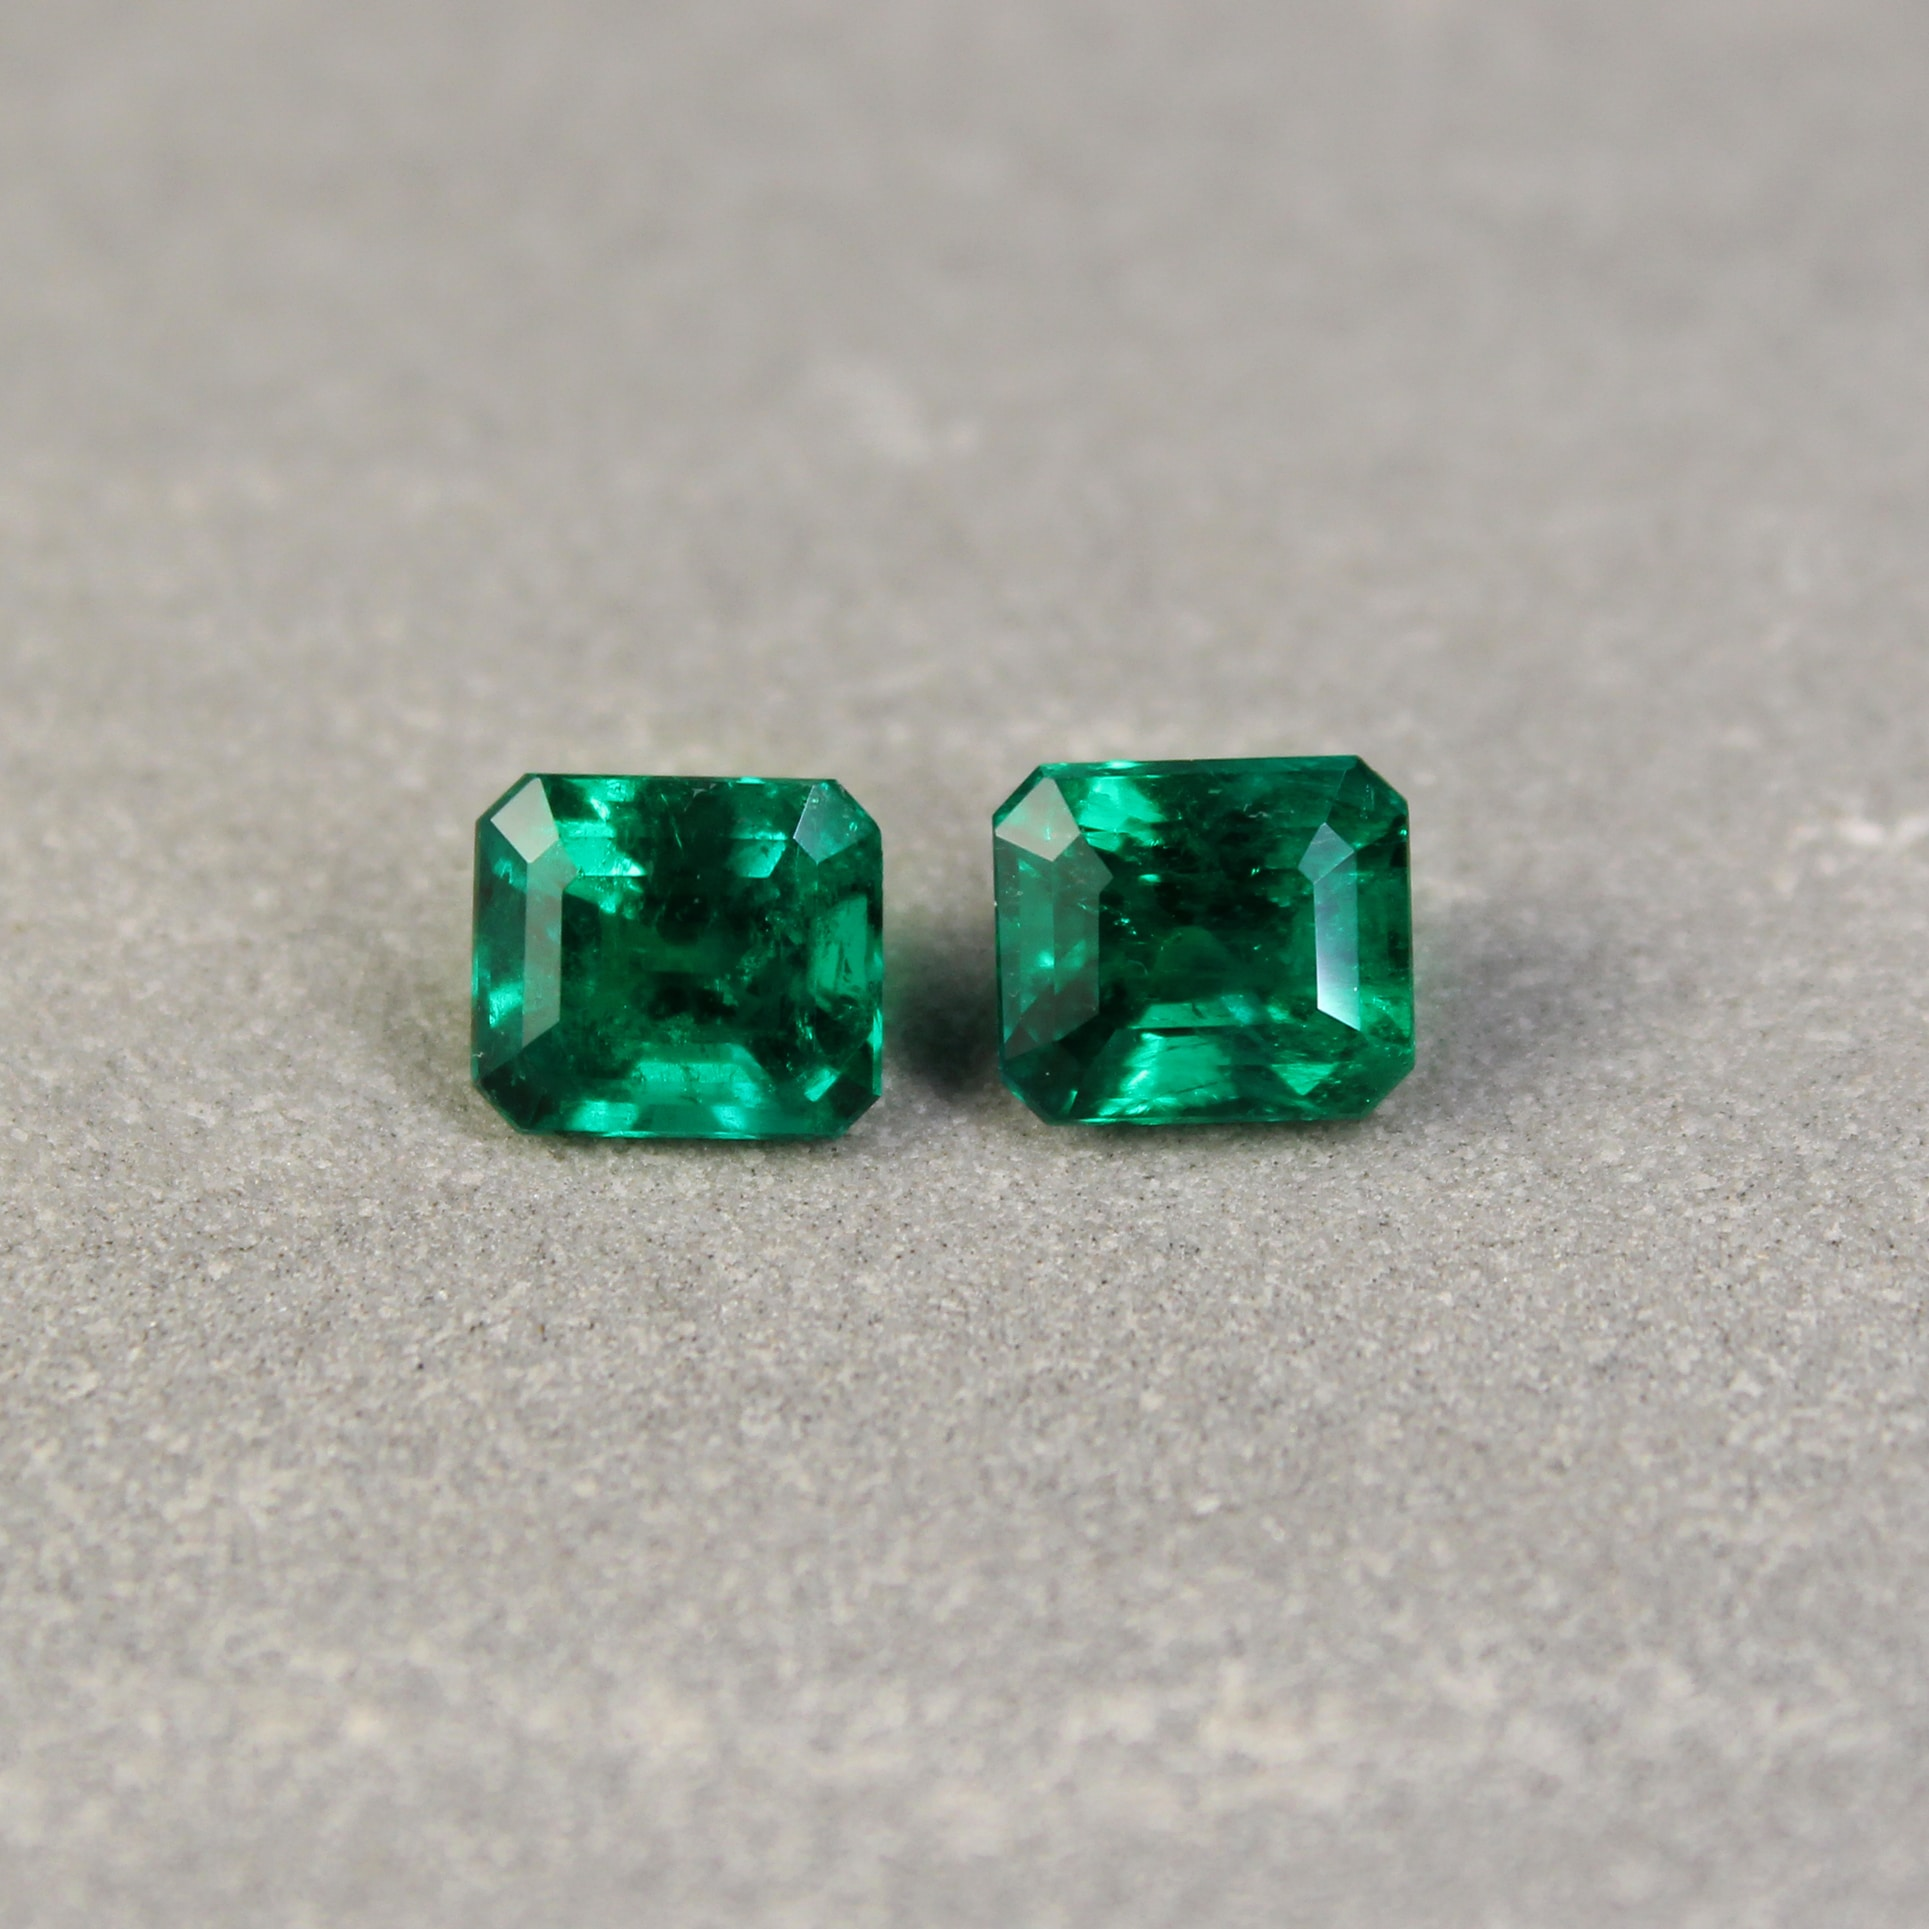 oman gems stone natural loose sale pictures for ratti emerald certified id online cts gemstone green in